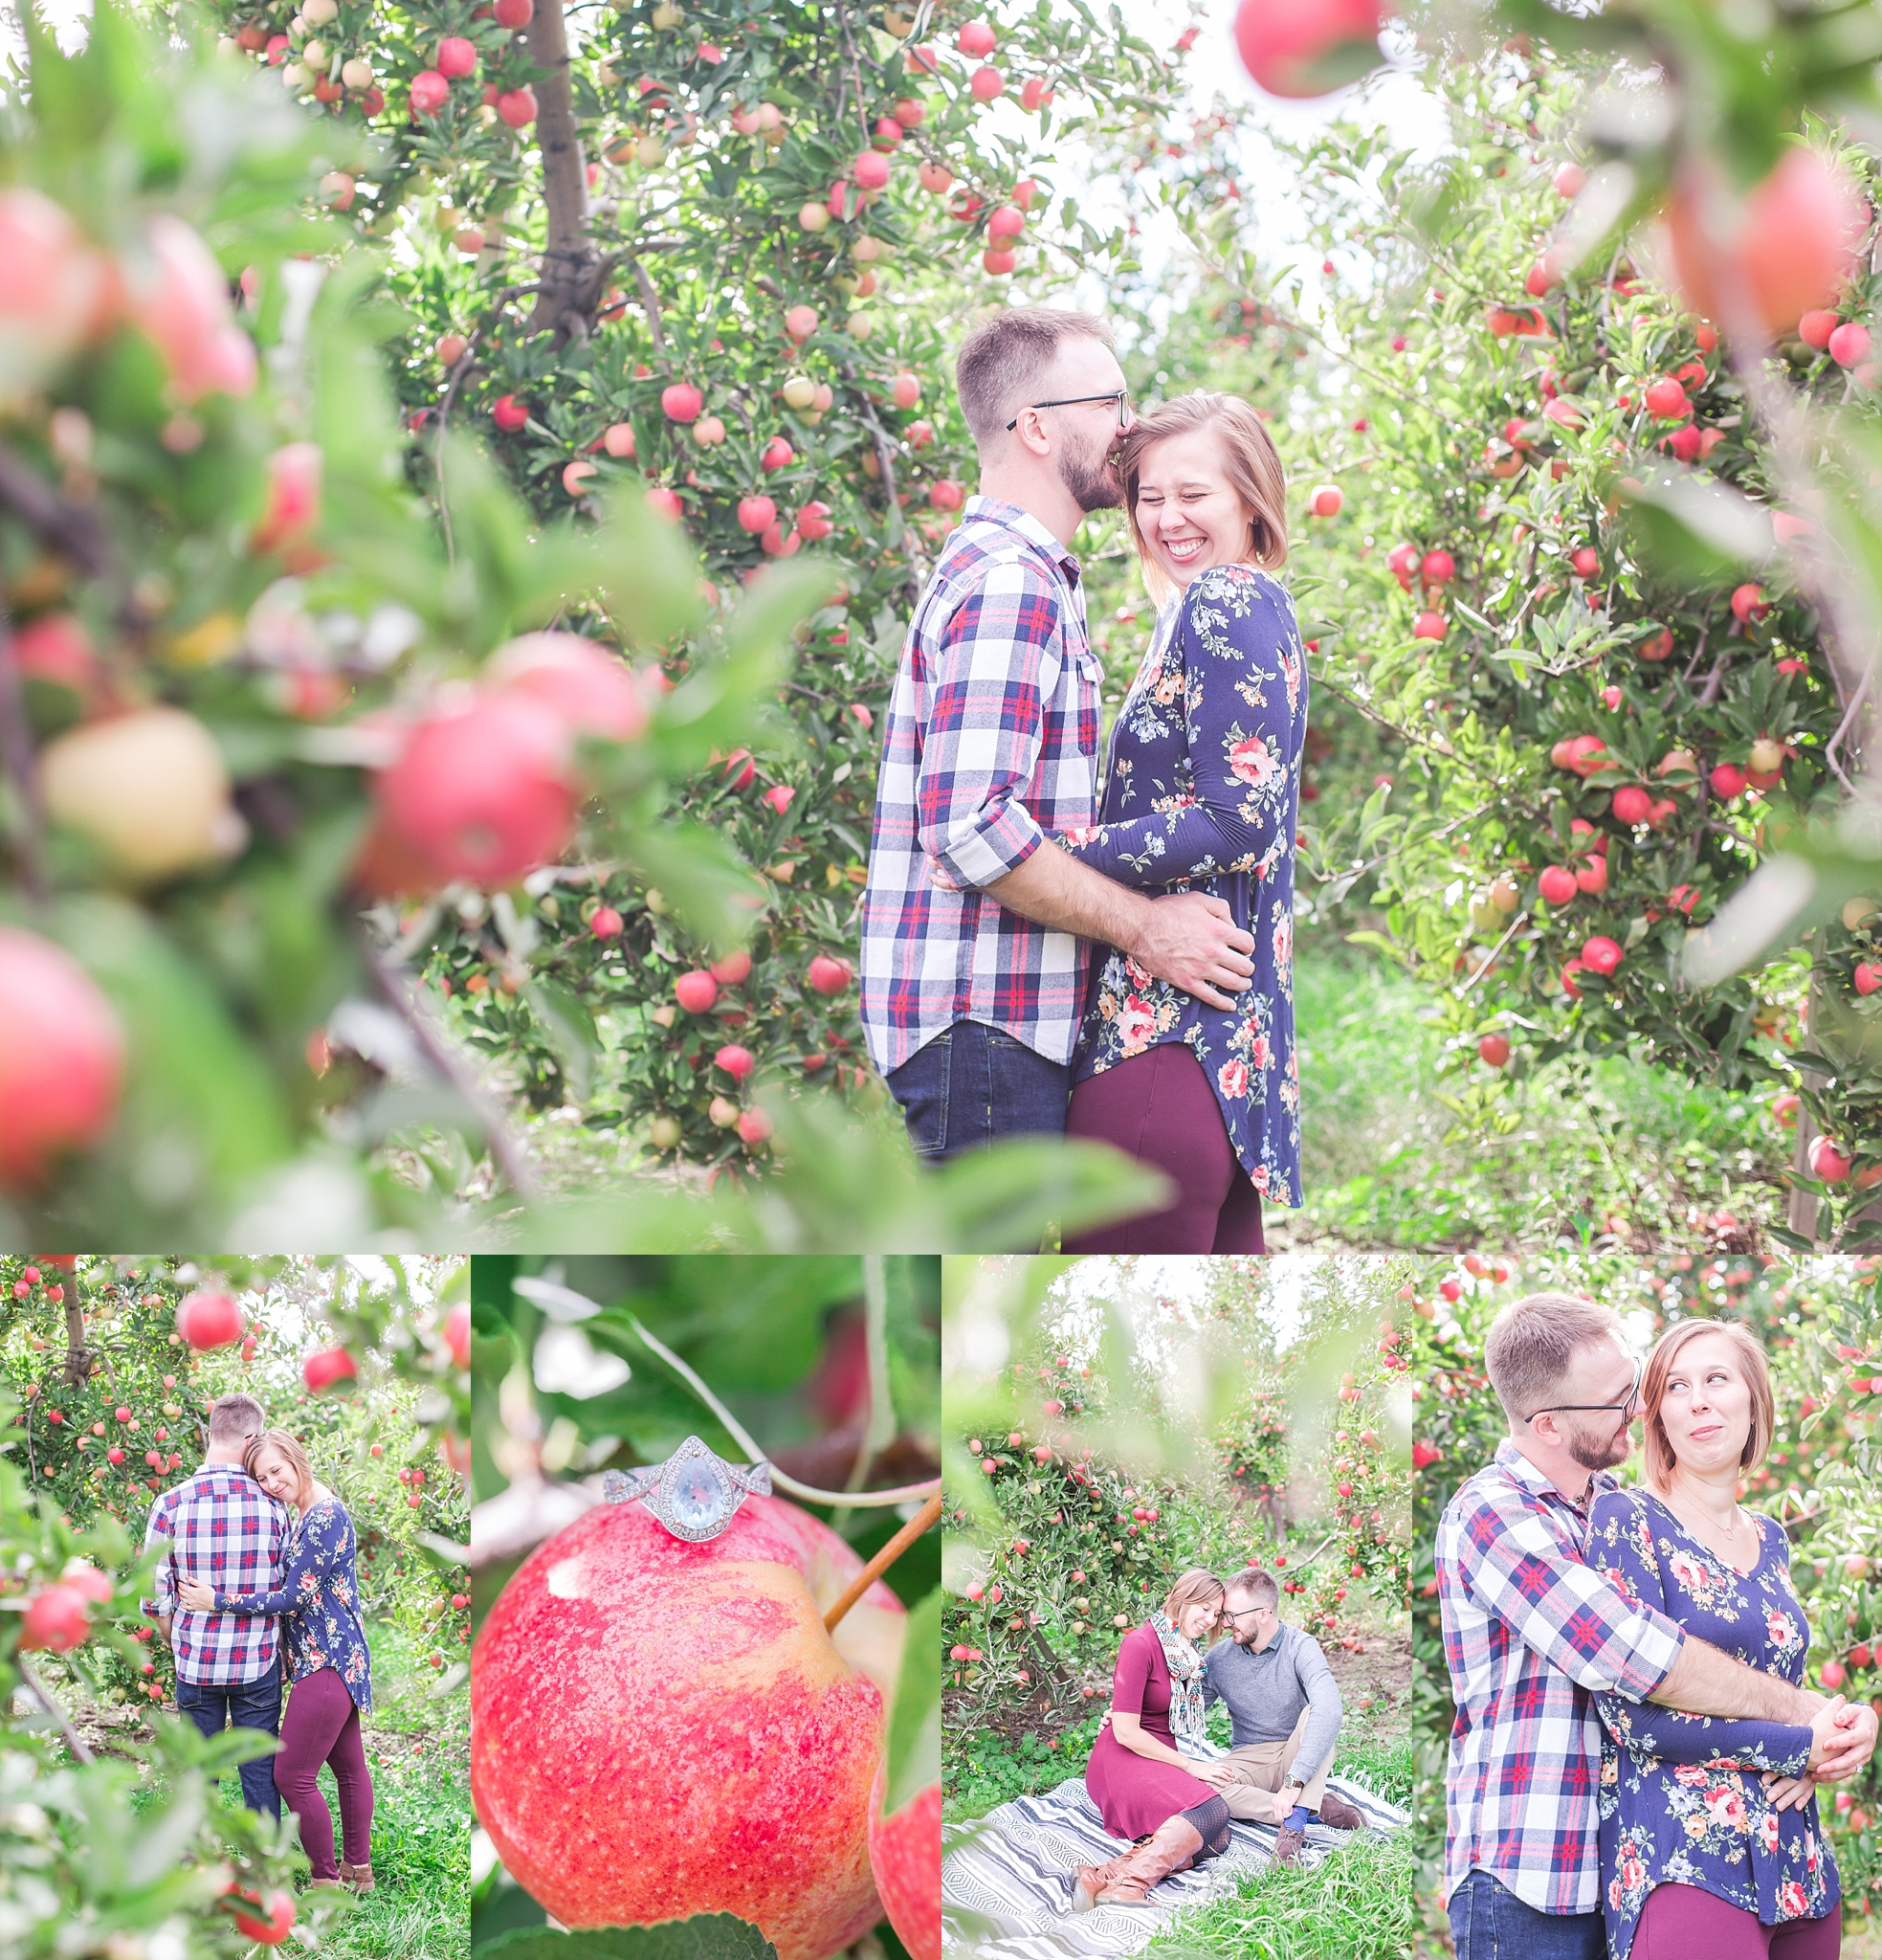 playful-fall-engagement-photos-at-hy's-cider-mill-ochard-in-bruce-township-michigan-by-courtney-carolyn-photography_0028.jpg